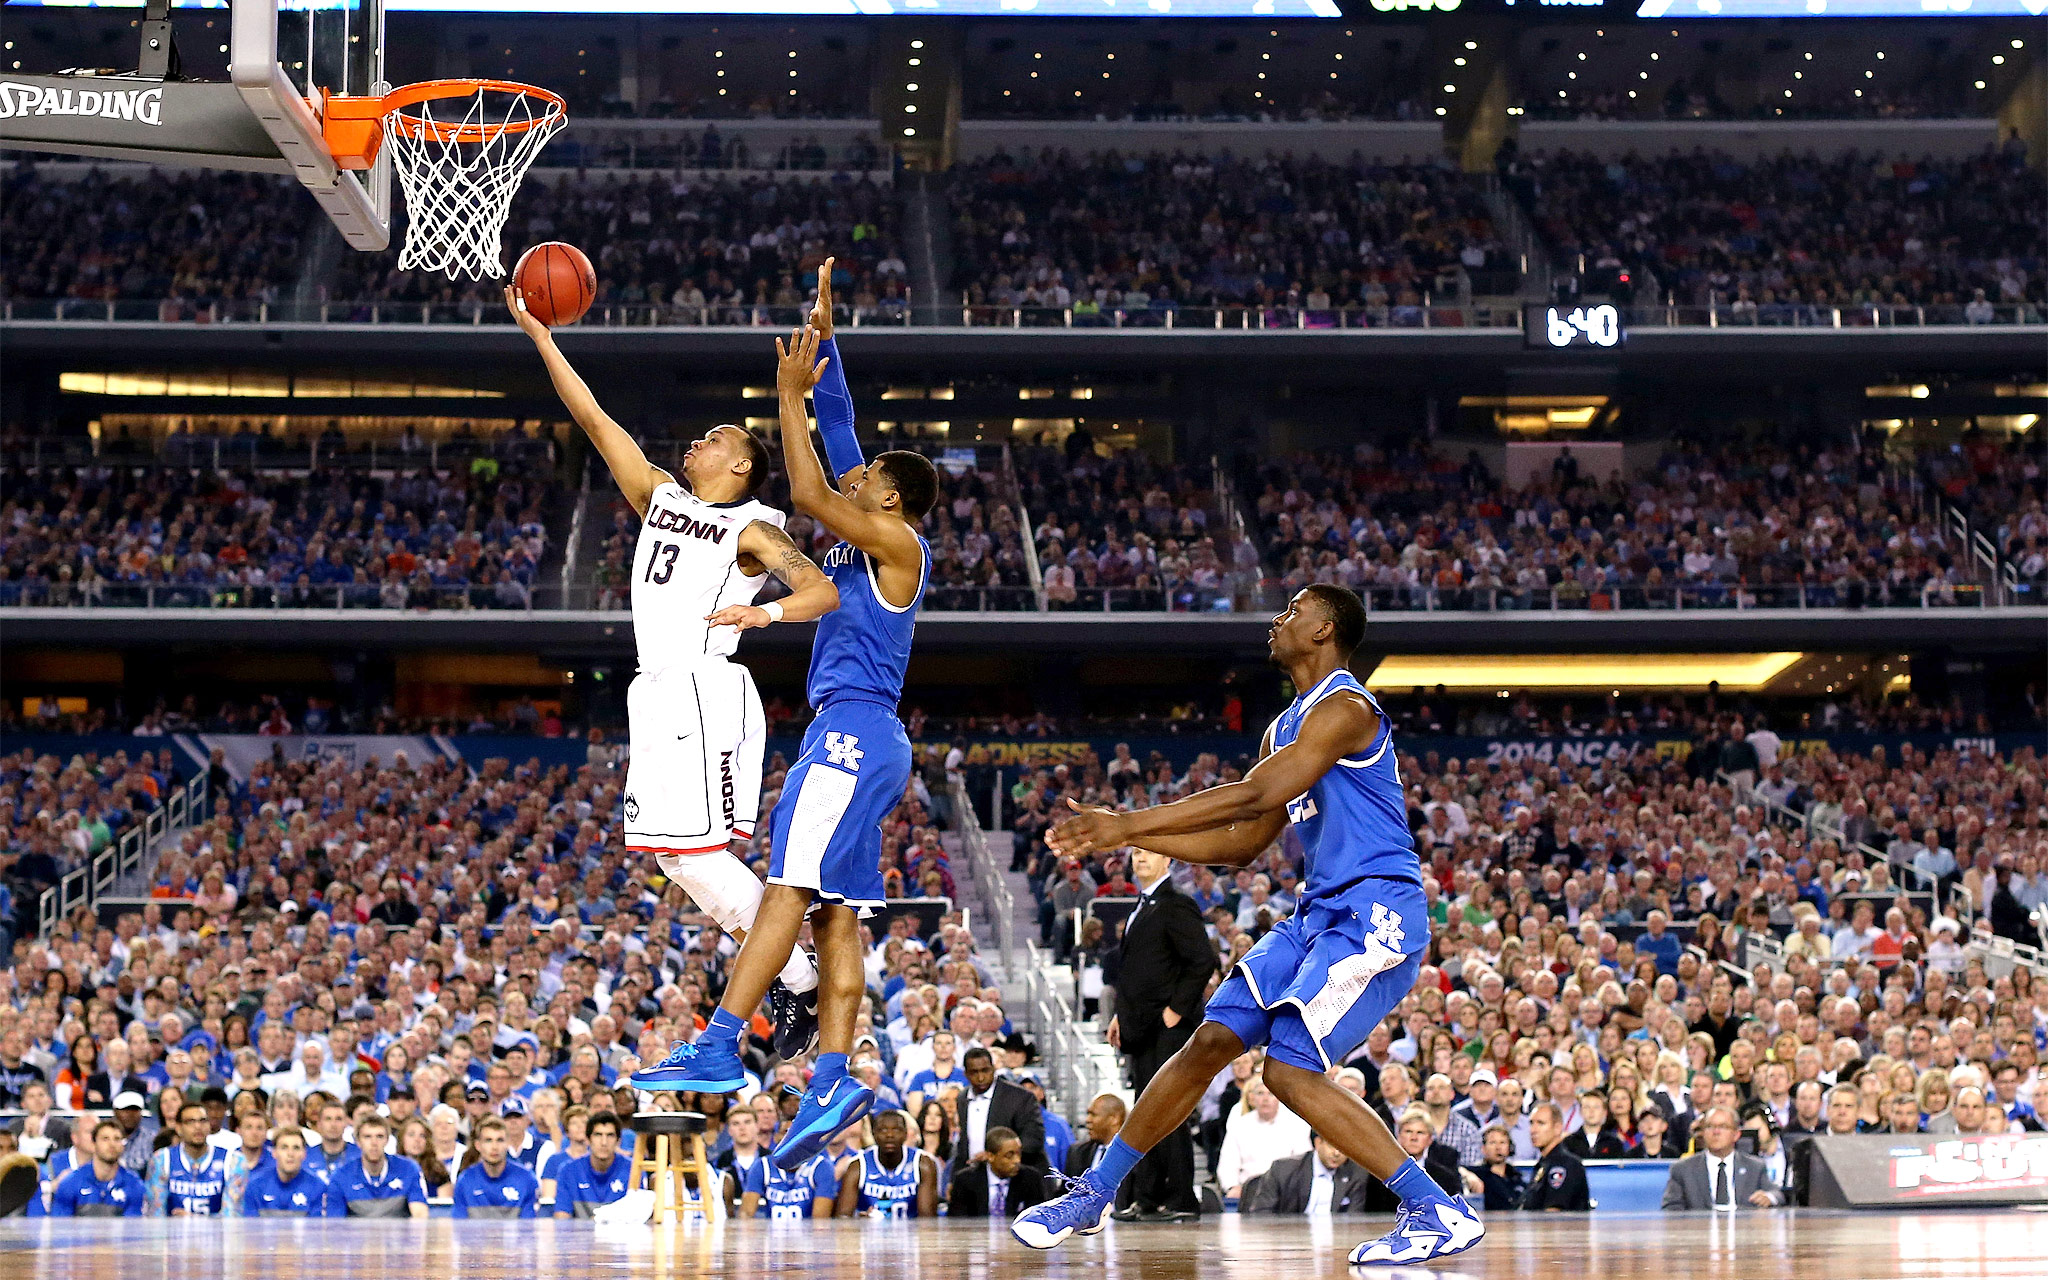 Taking Flight - 2014 NCAA Tournament: Championship Game - ESPN